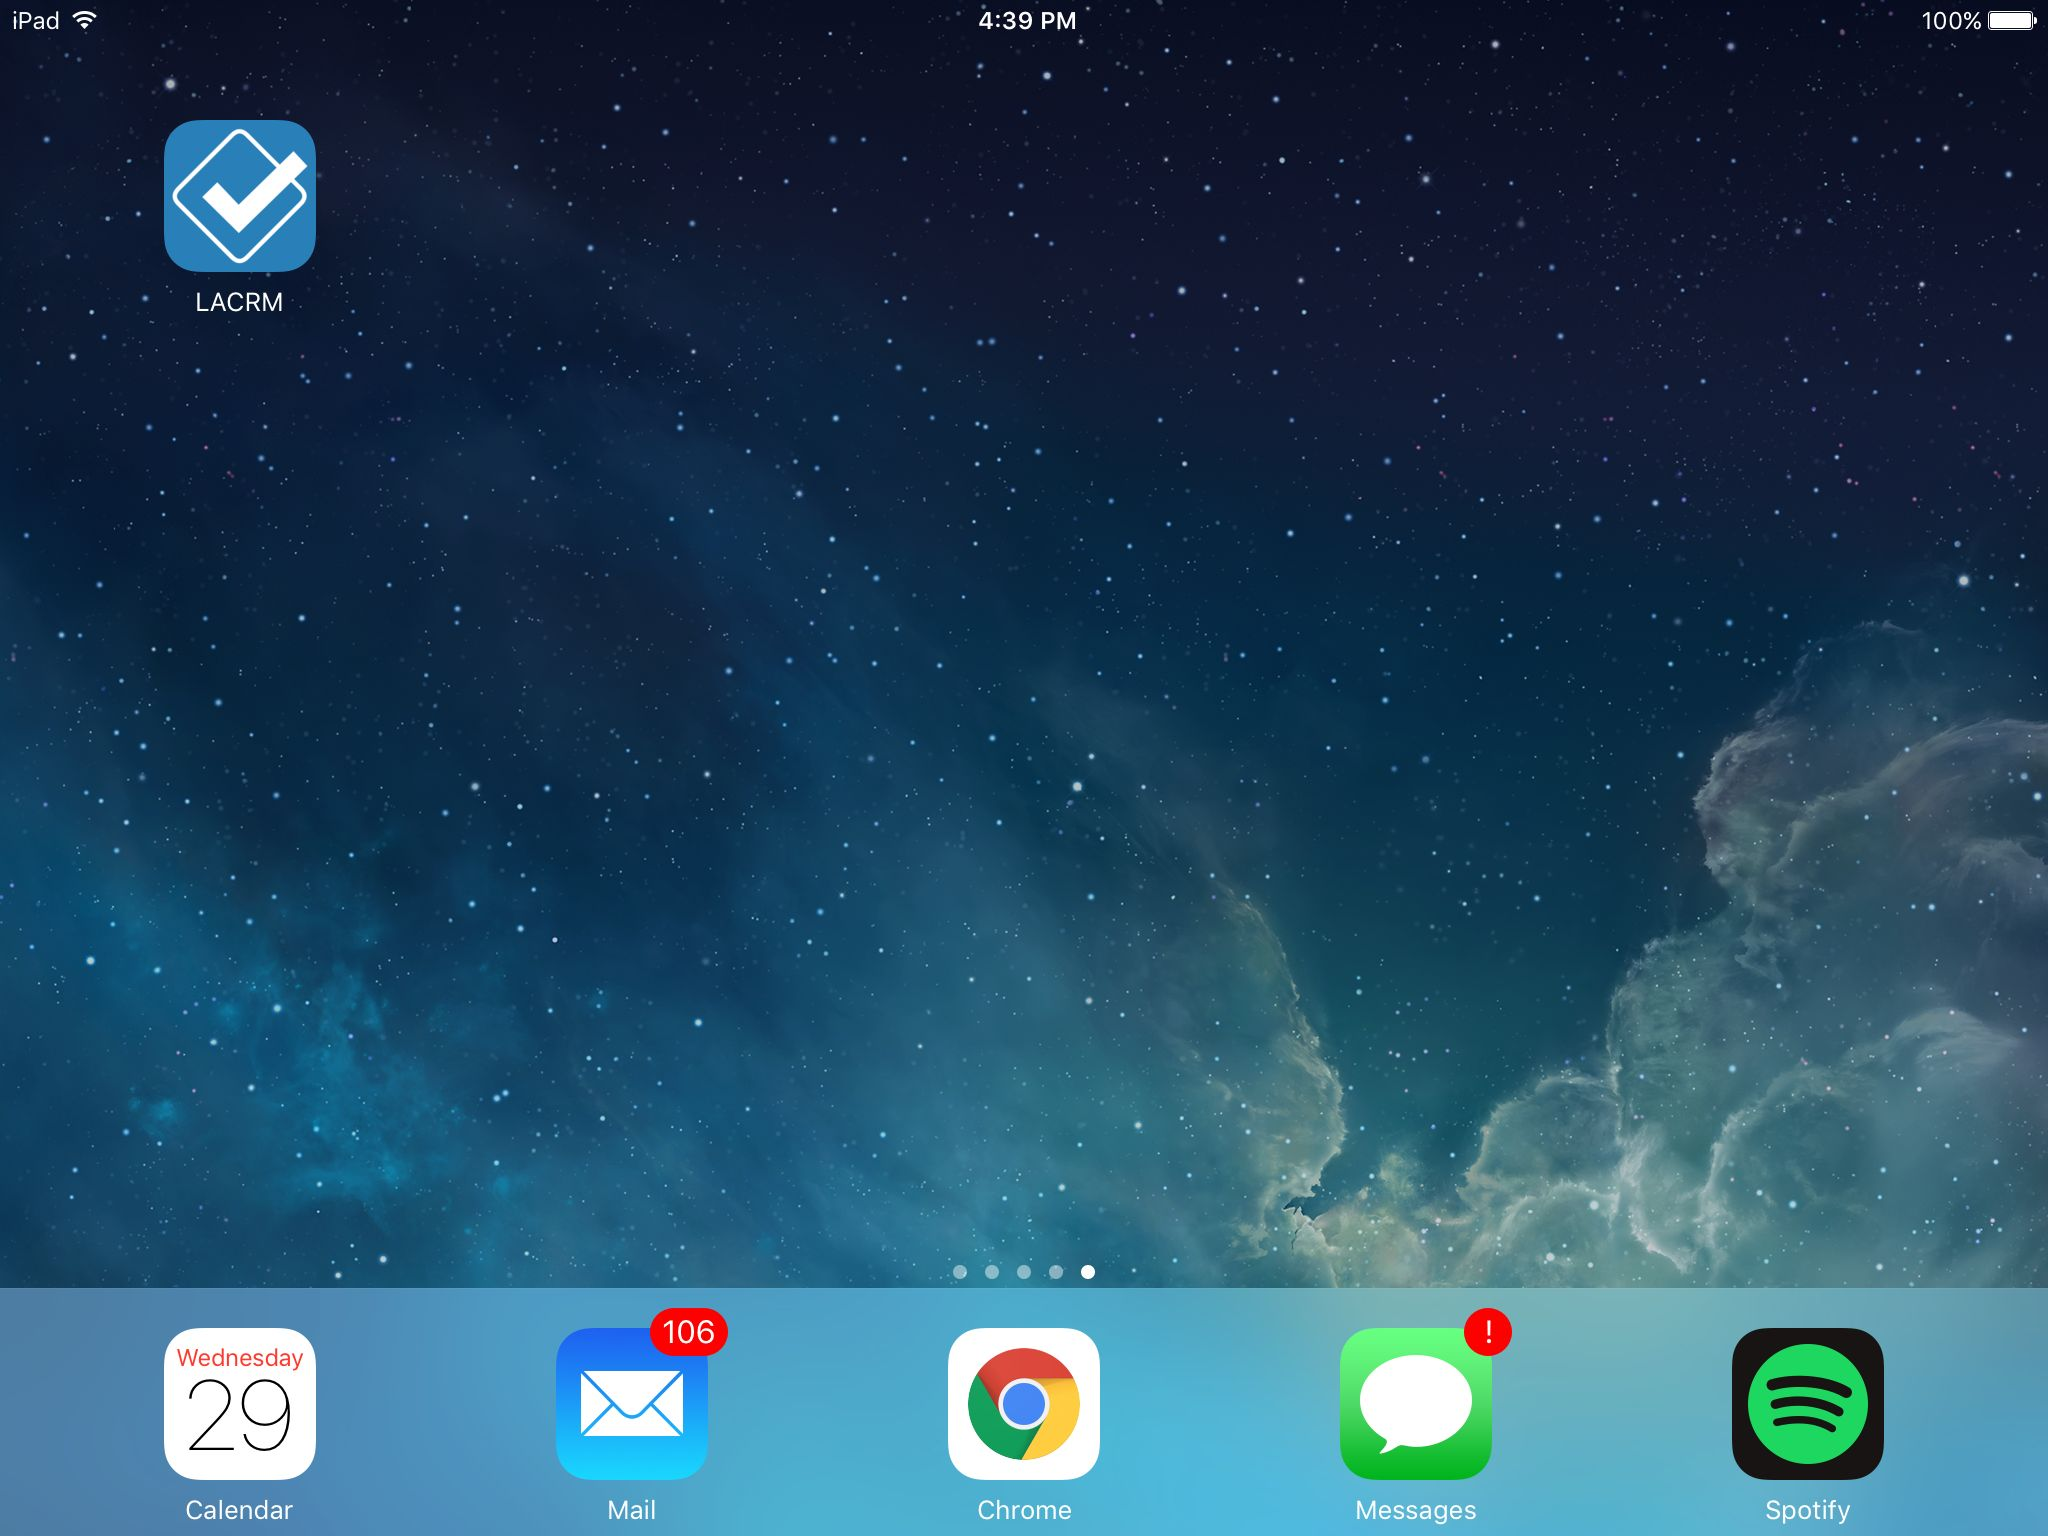 Less Annoying CRM pin on iPad Home Screen